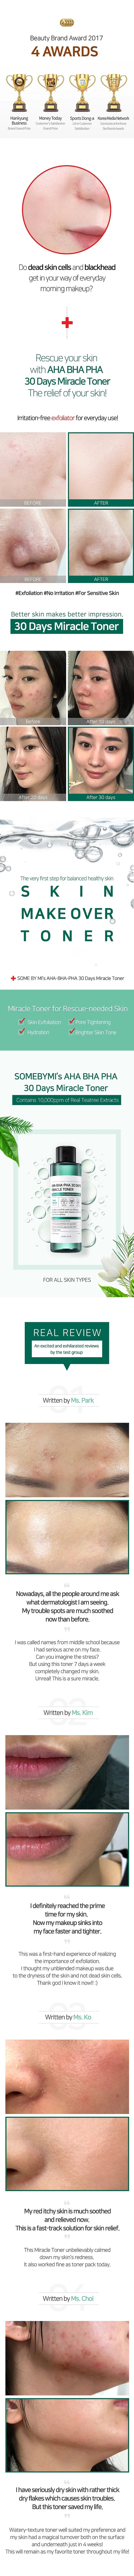 somebymi aha · bha · pha 30 days miracle toner